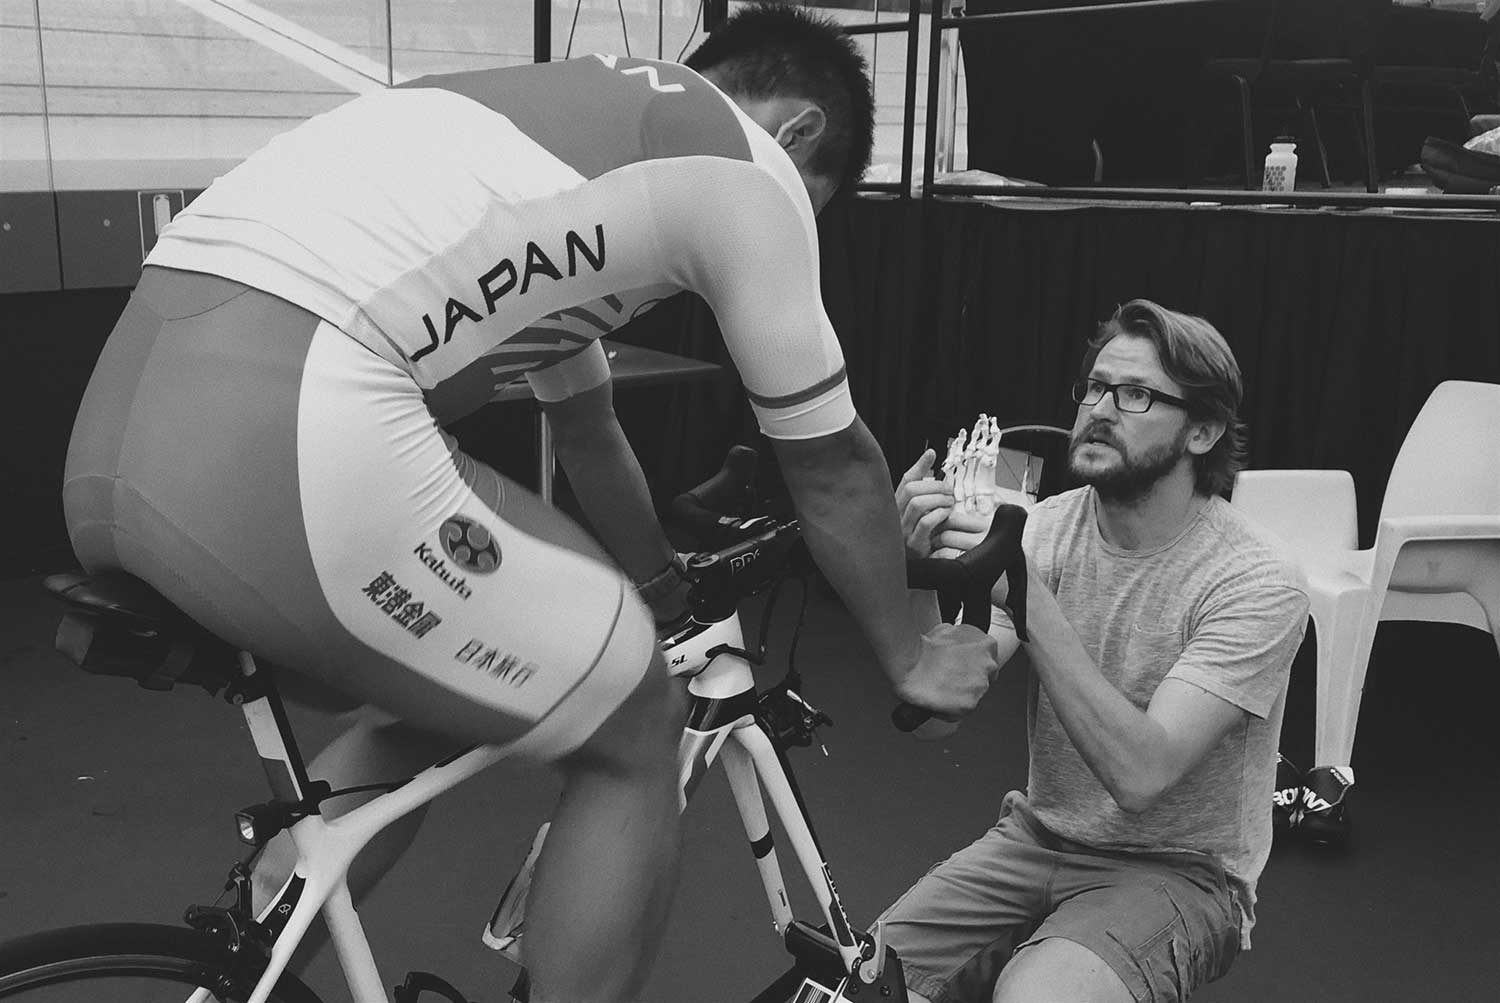 Japanese track cyclist talks to podiatrist when fitting foot orthotics at velodrome during training session